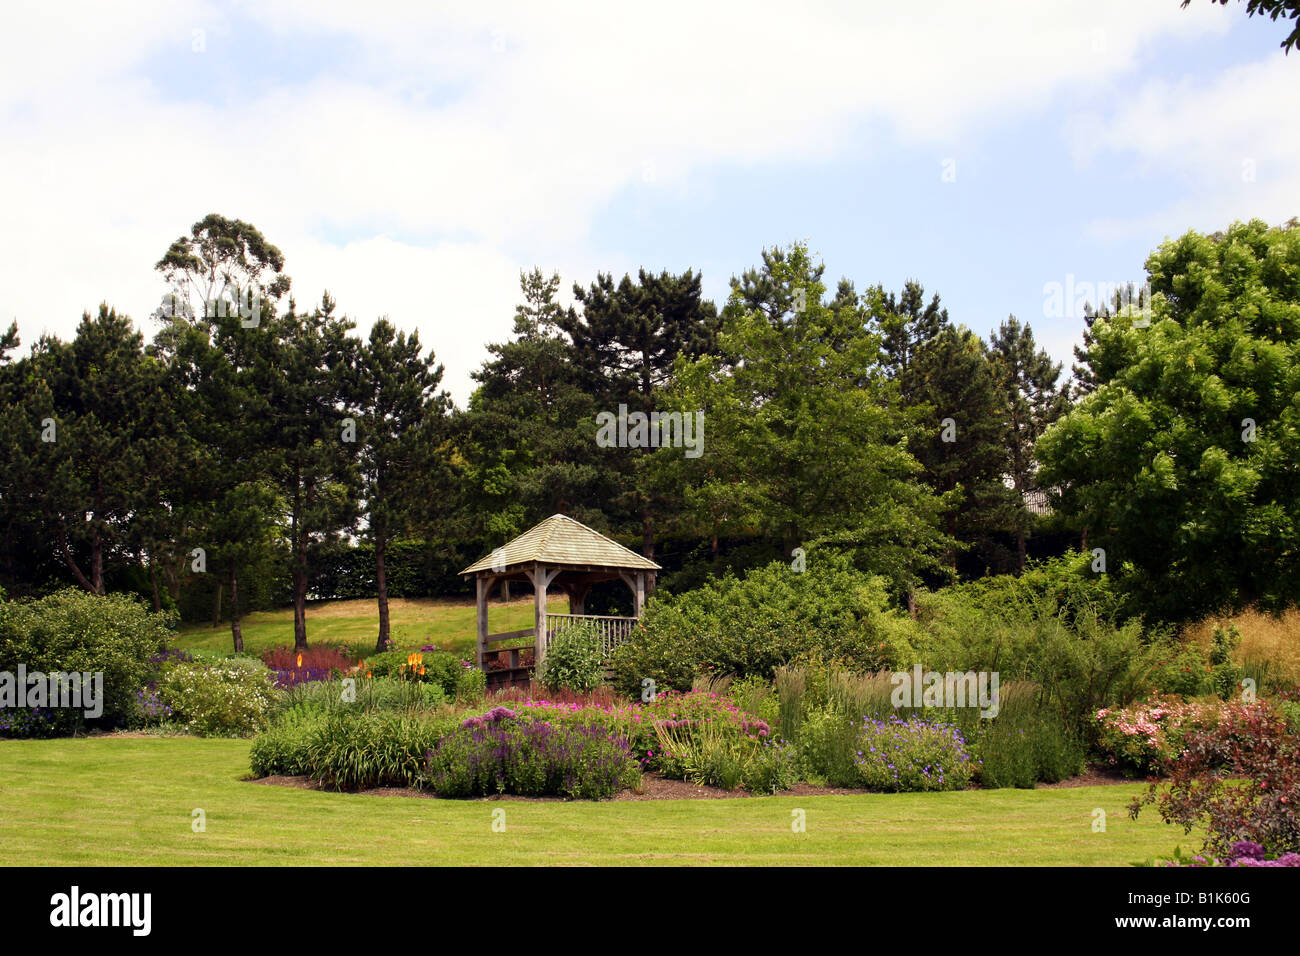 ENGLISH COUNTRY GARDEN AND SUMMER HOUSE. RHS HYDE HALL ESSEX UK - Stock Image